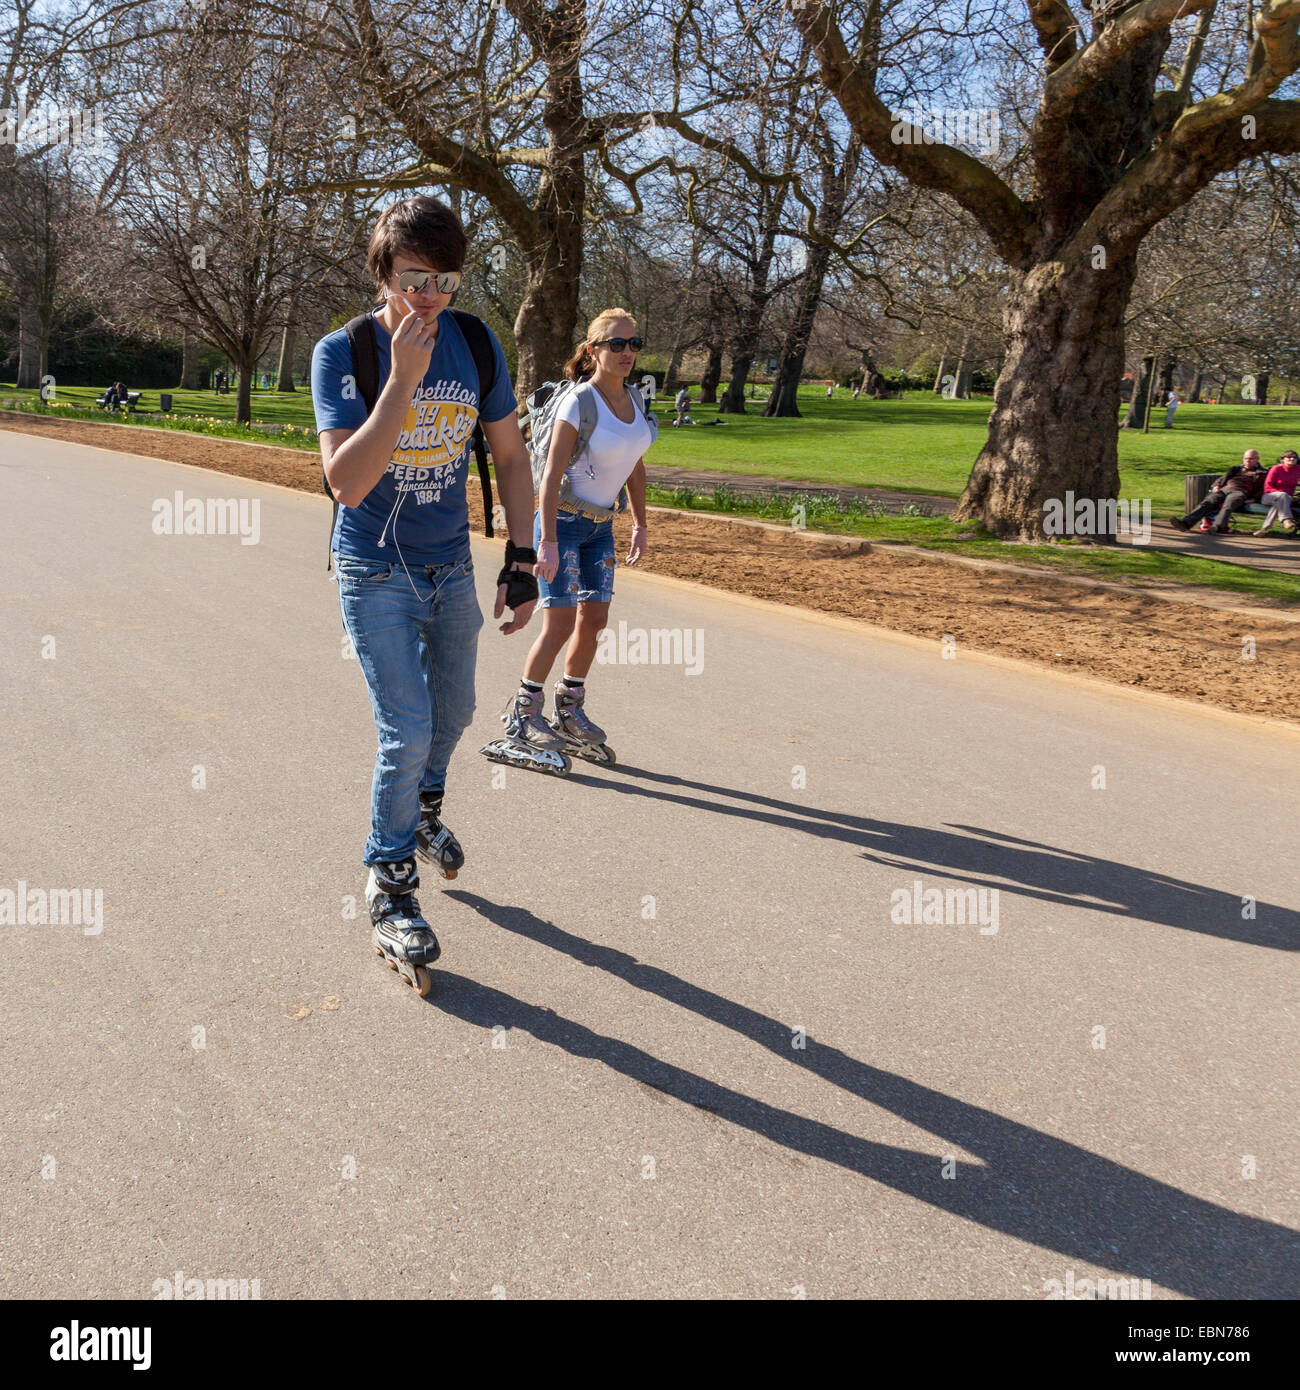 Roller skating hyde park